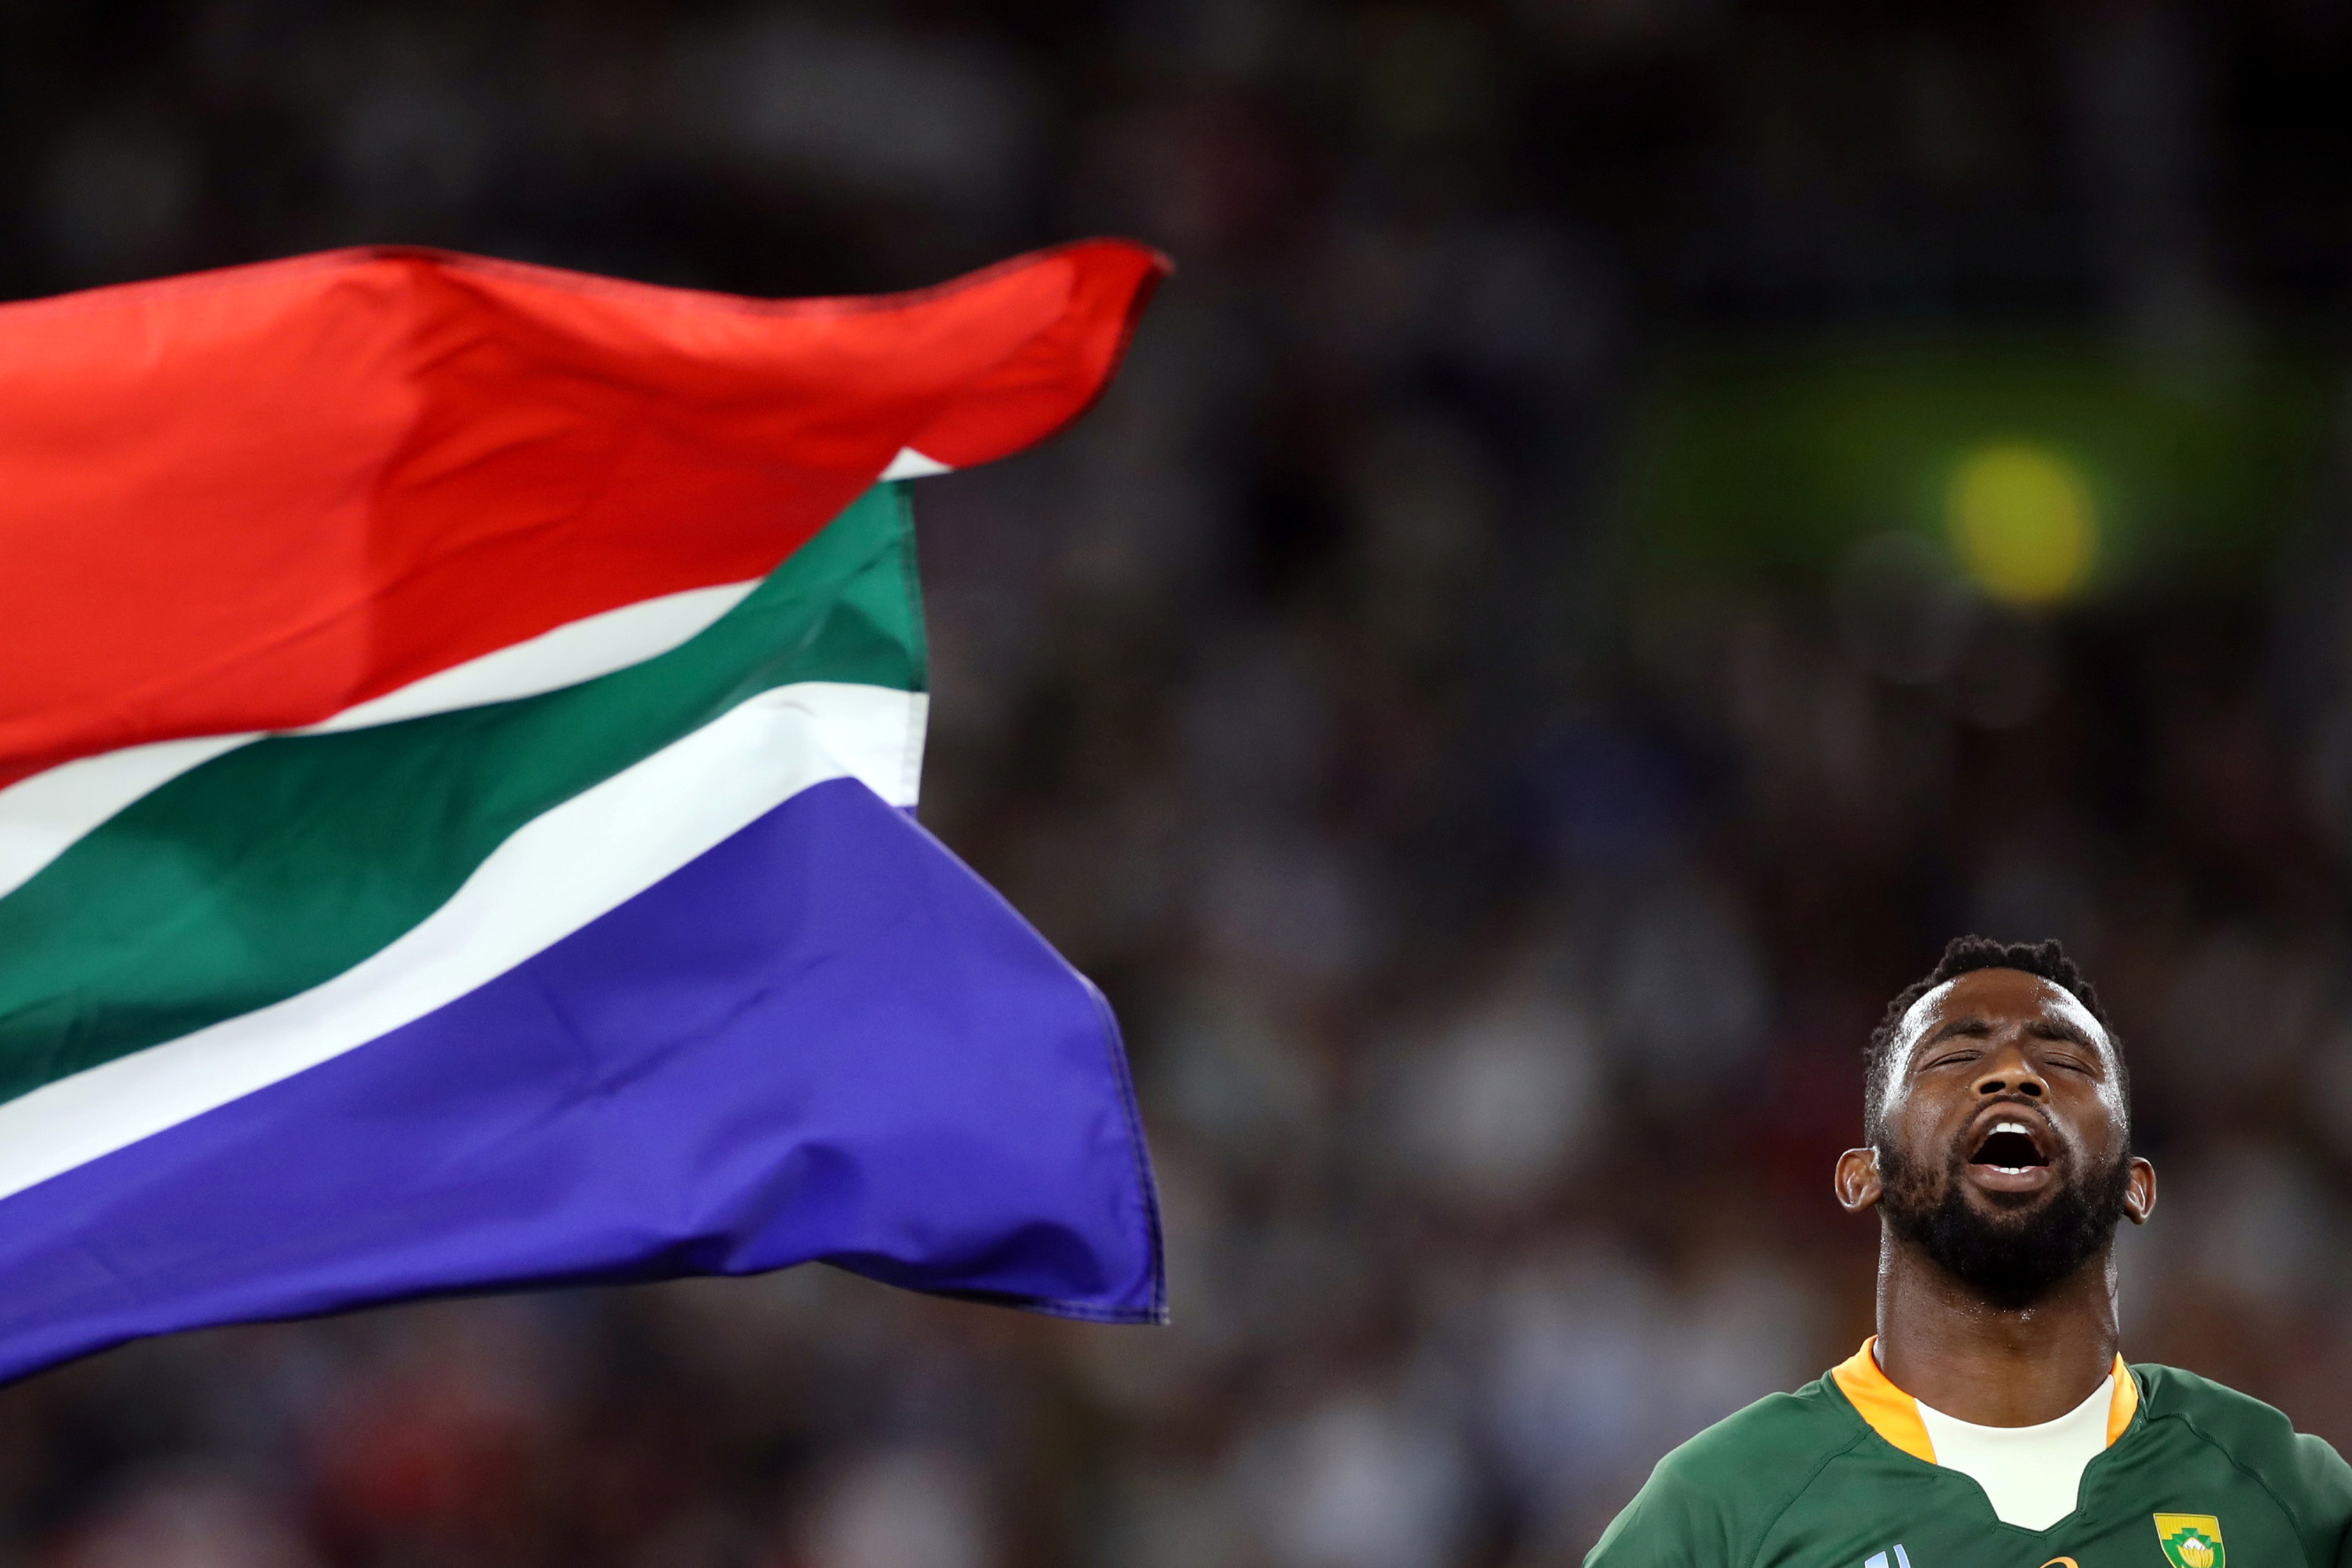 4 October 2019: South Africa's Siya Kolisi during the national anthem before the Rugby World Cup match with Italy at the Shizuoka Stadium Ecopa in Japan. (Reuters/Peter Cziborra)